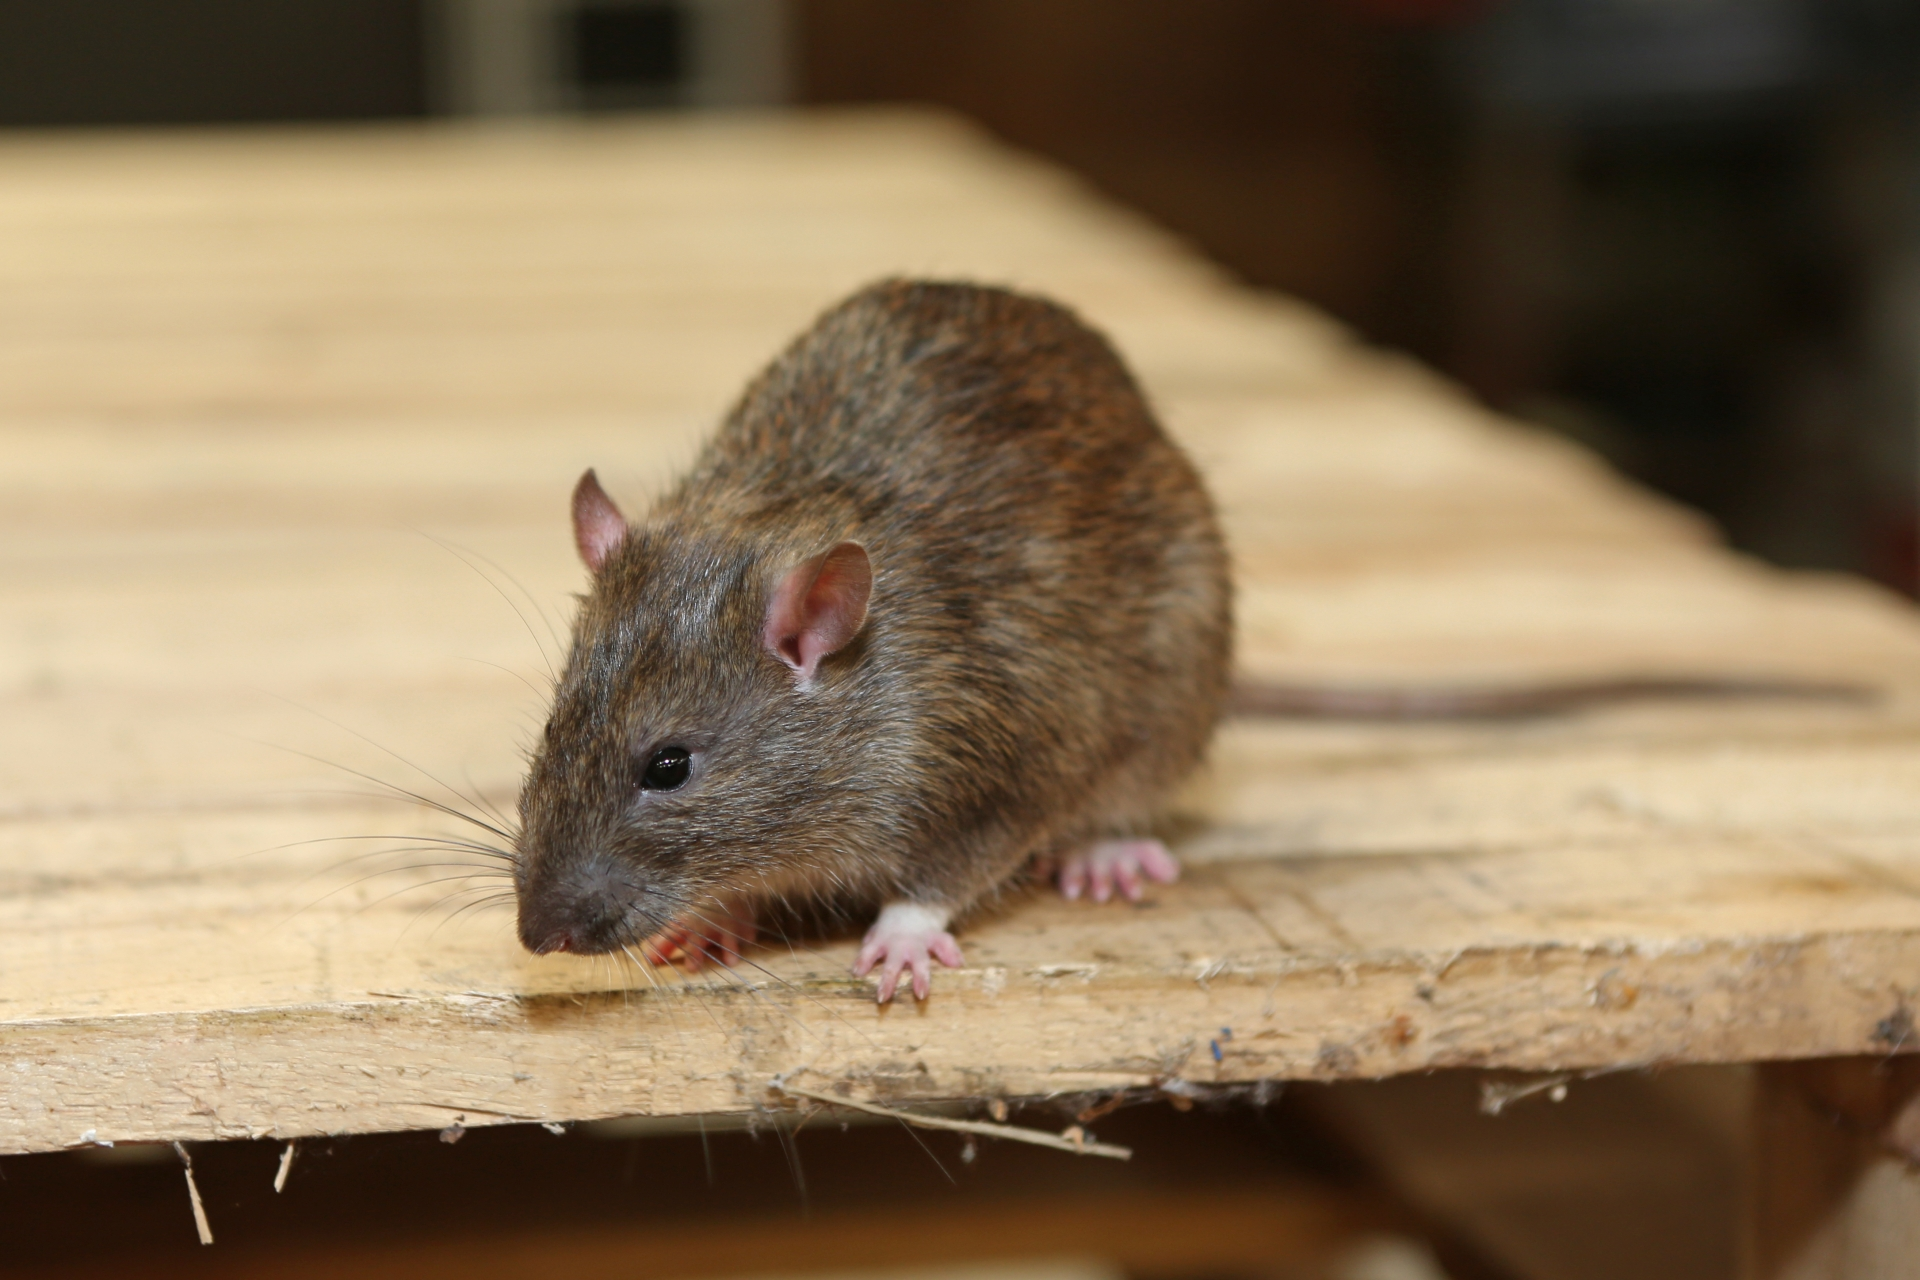 Rat extermination, Pest Control in Gordon Hill, EN2. Call Now 020 8166 9746